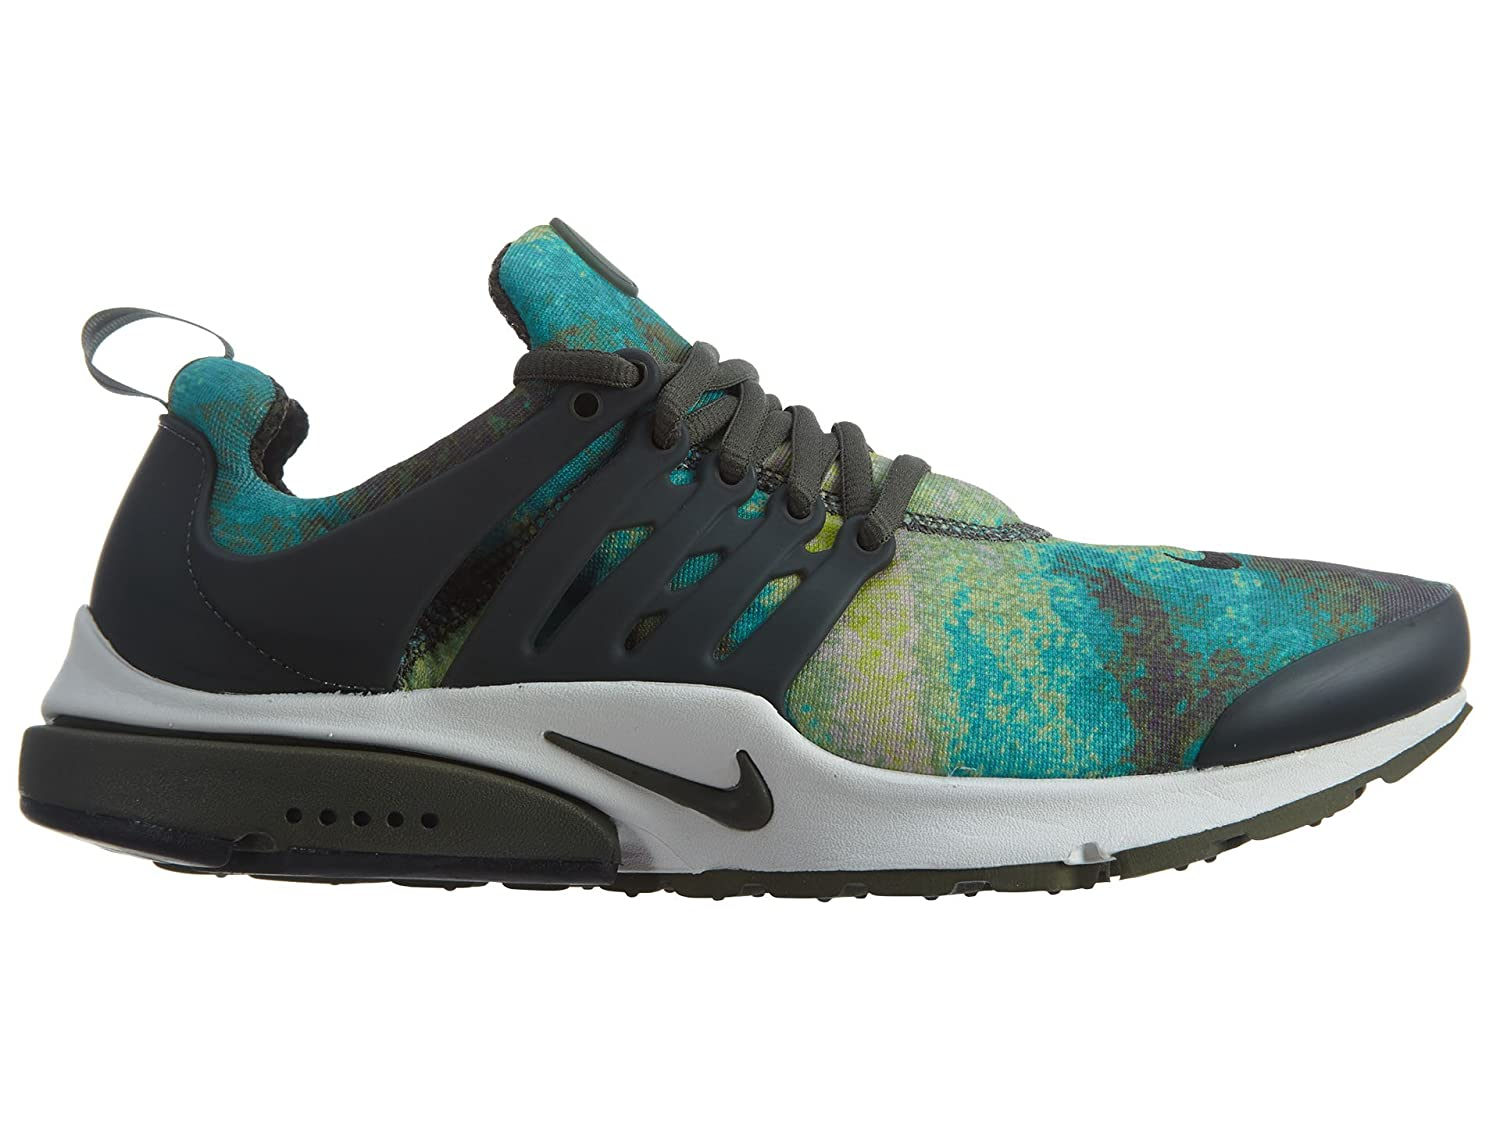 promo code 798fd 67fb6 ... netherlands amazon nike air presto gpx mens shoes phantom cargo khaki  clear jade celery 848188 003